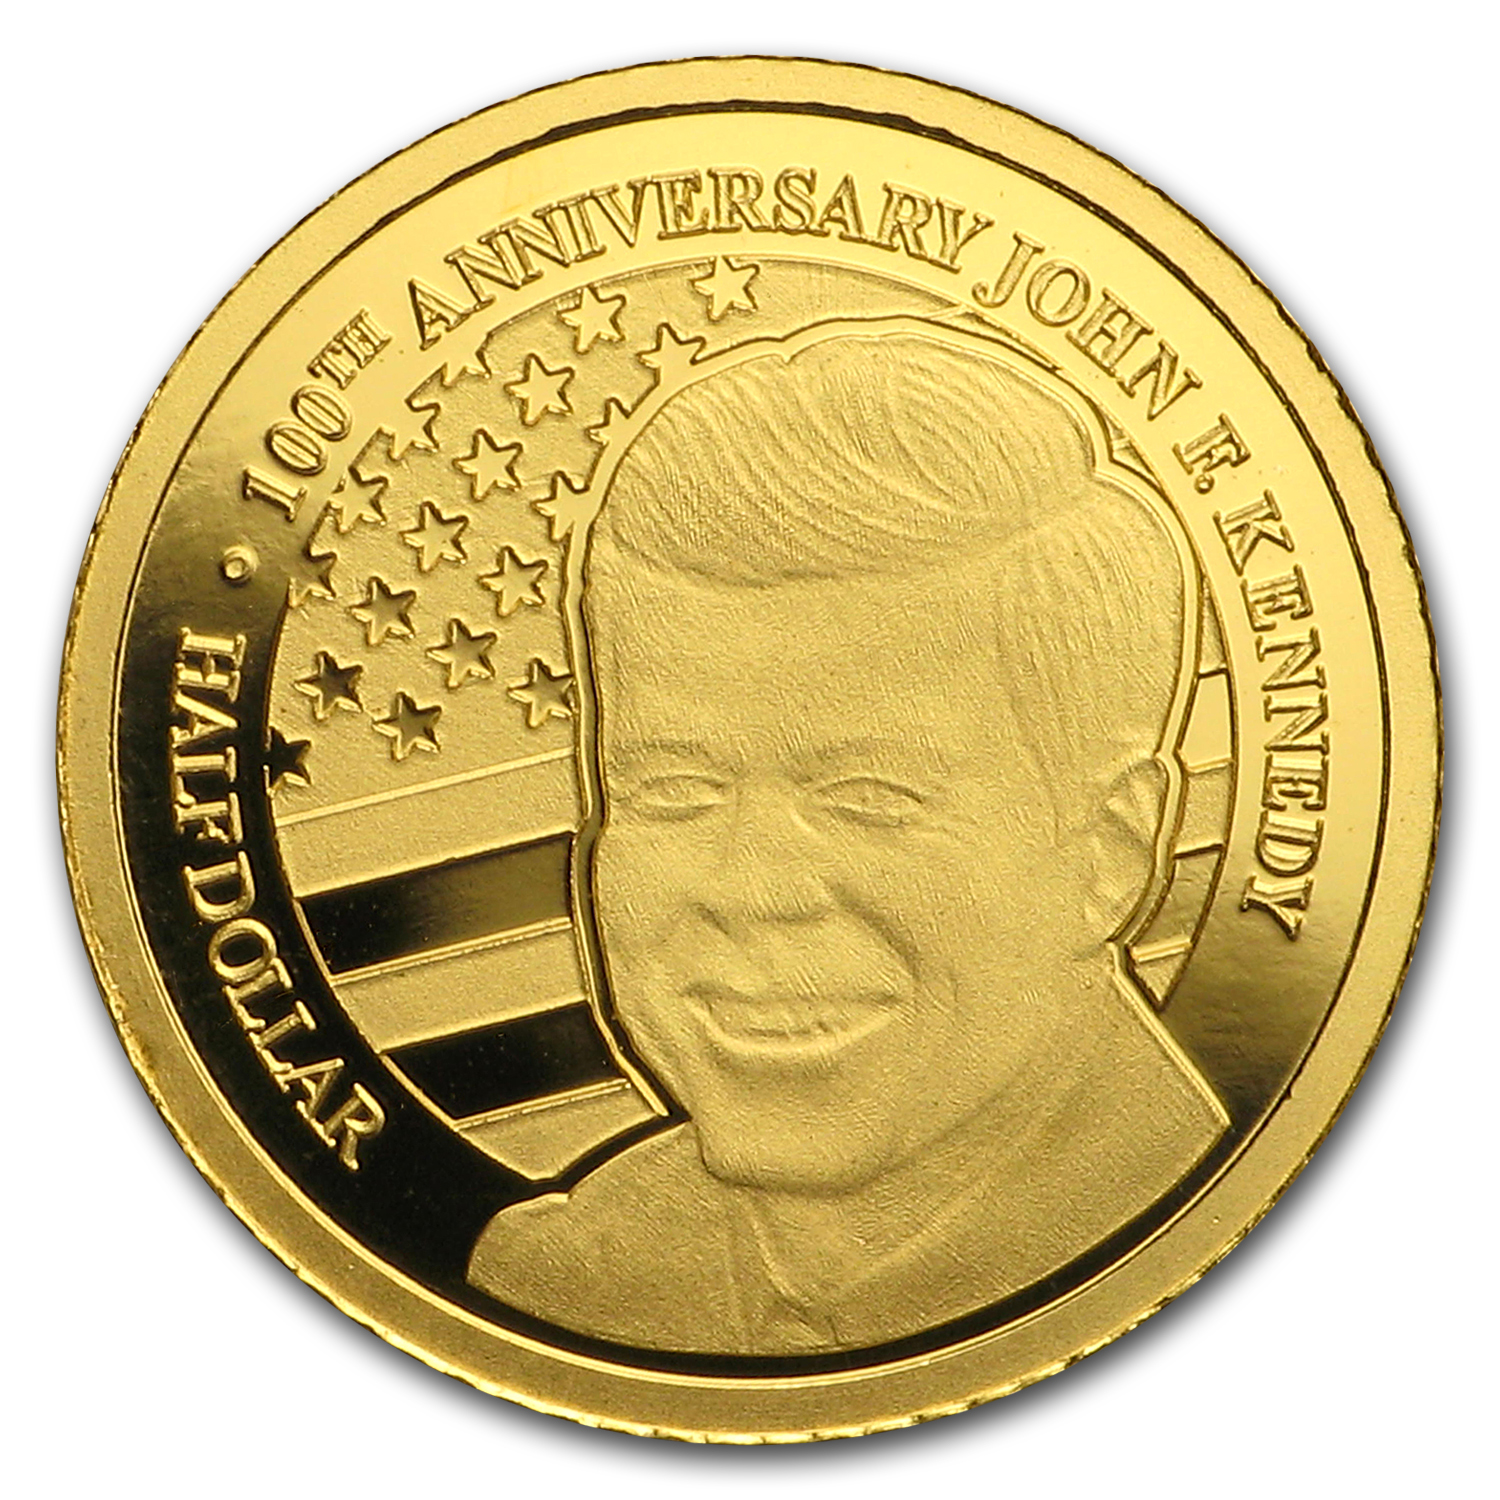 2017 Nauru 1/2 gram Gold 100th Anniversary of John F. Kennedy